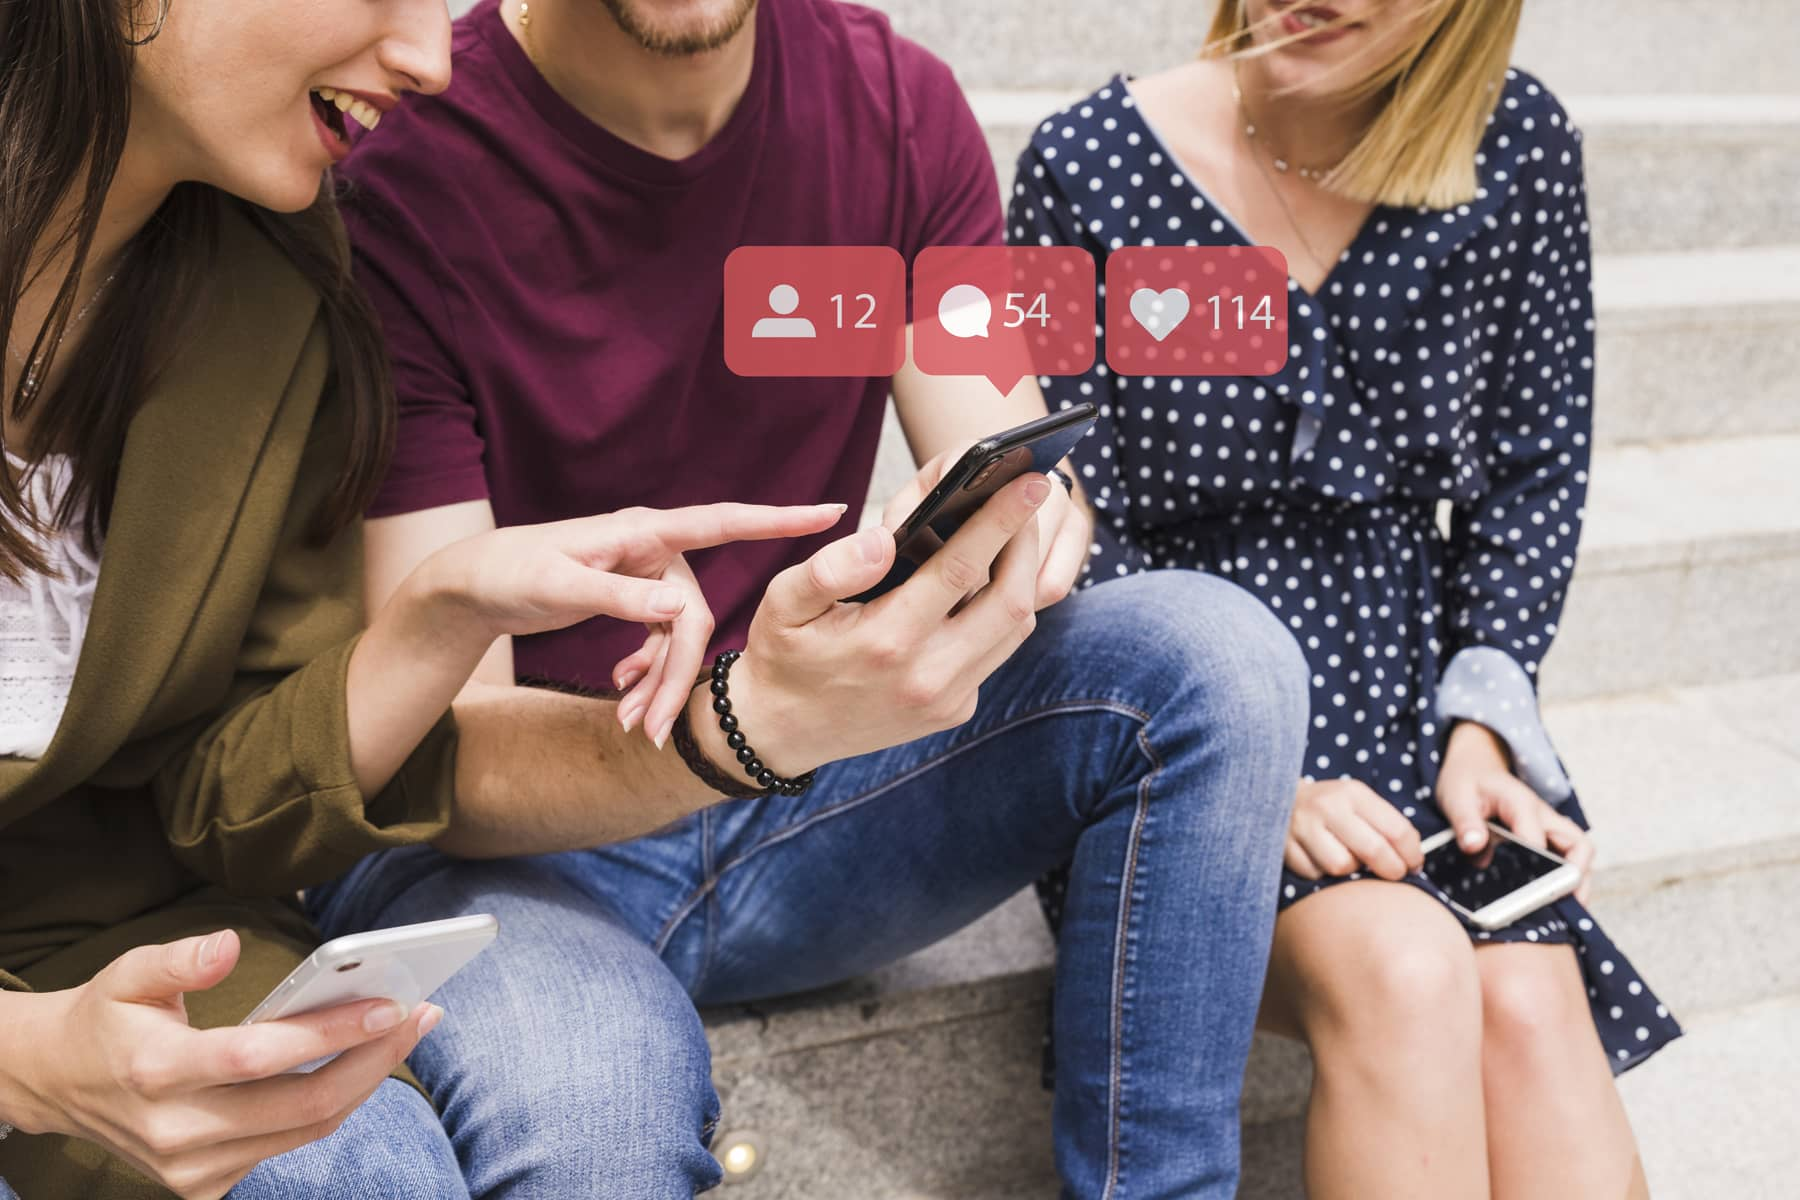 A close view of three young people laughing and discussing something they see in one's smartphone while social media marketing engagement icons fly across the image.